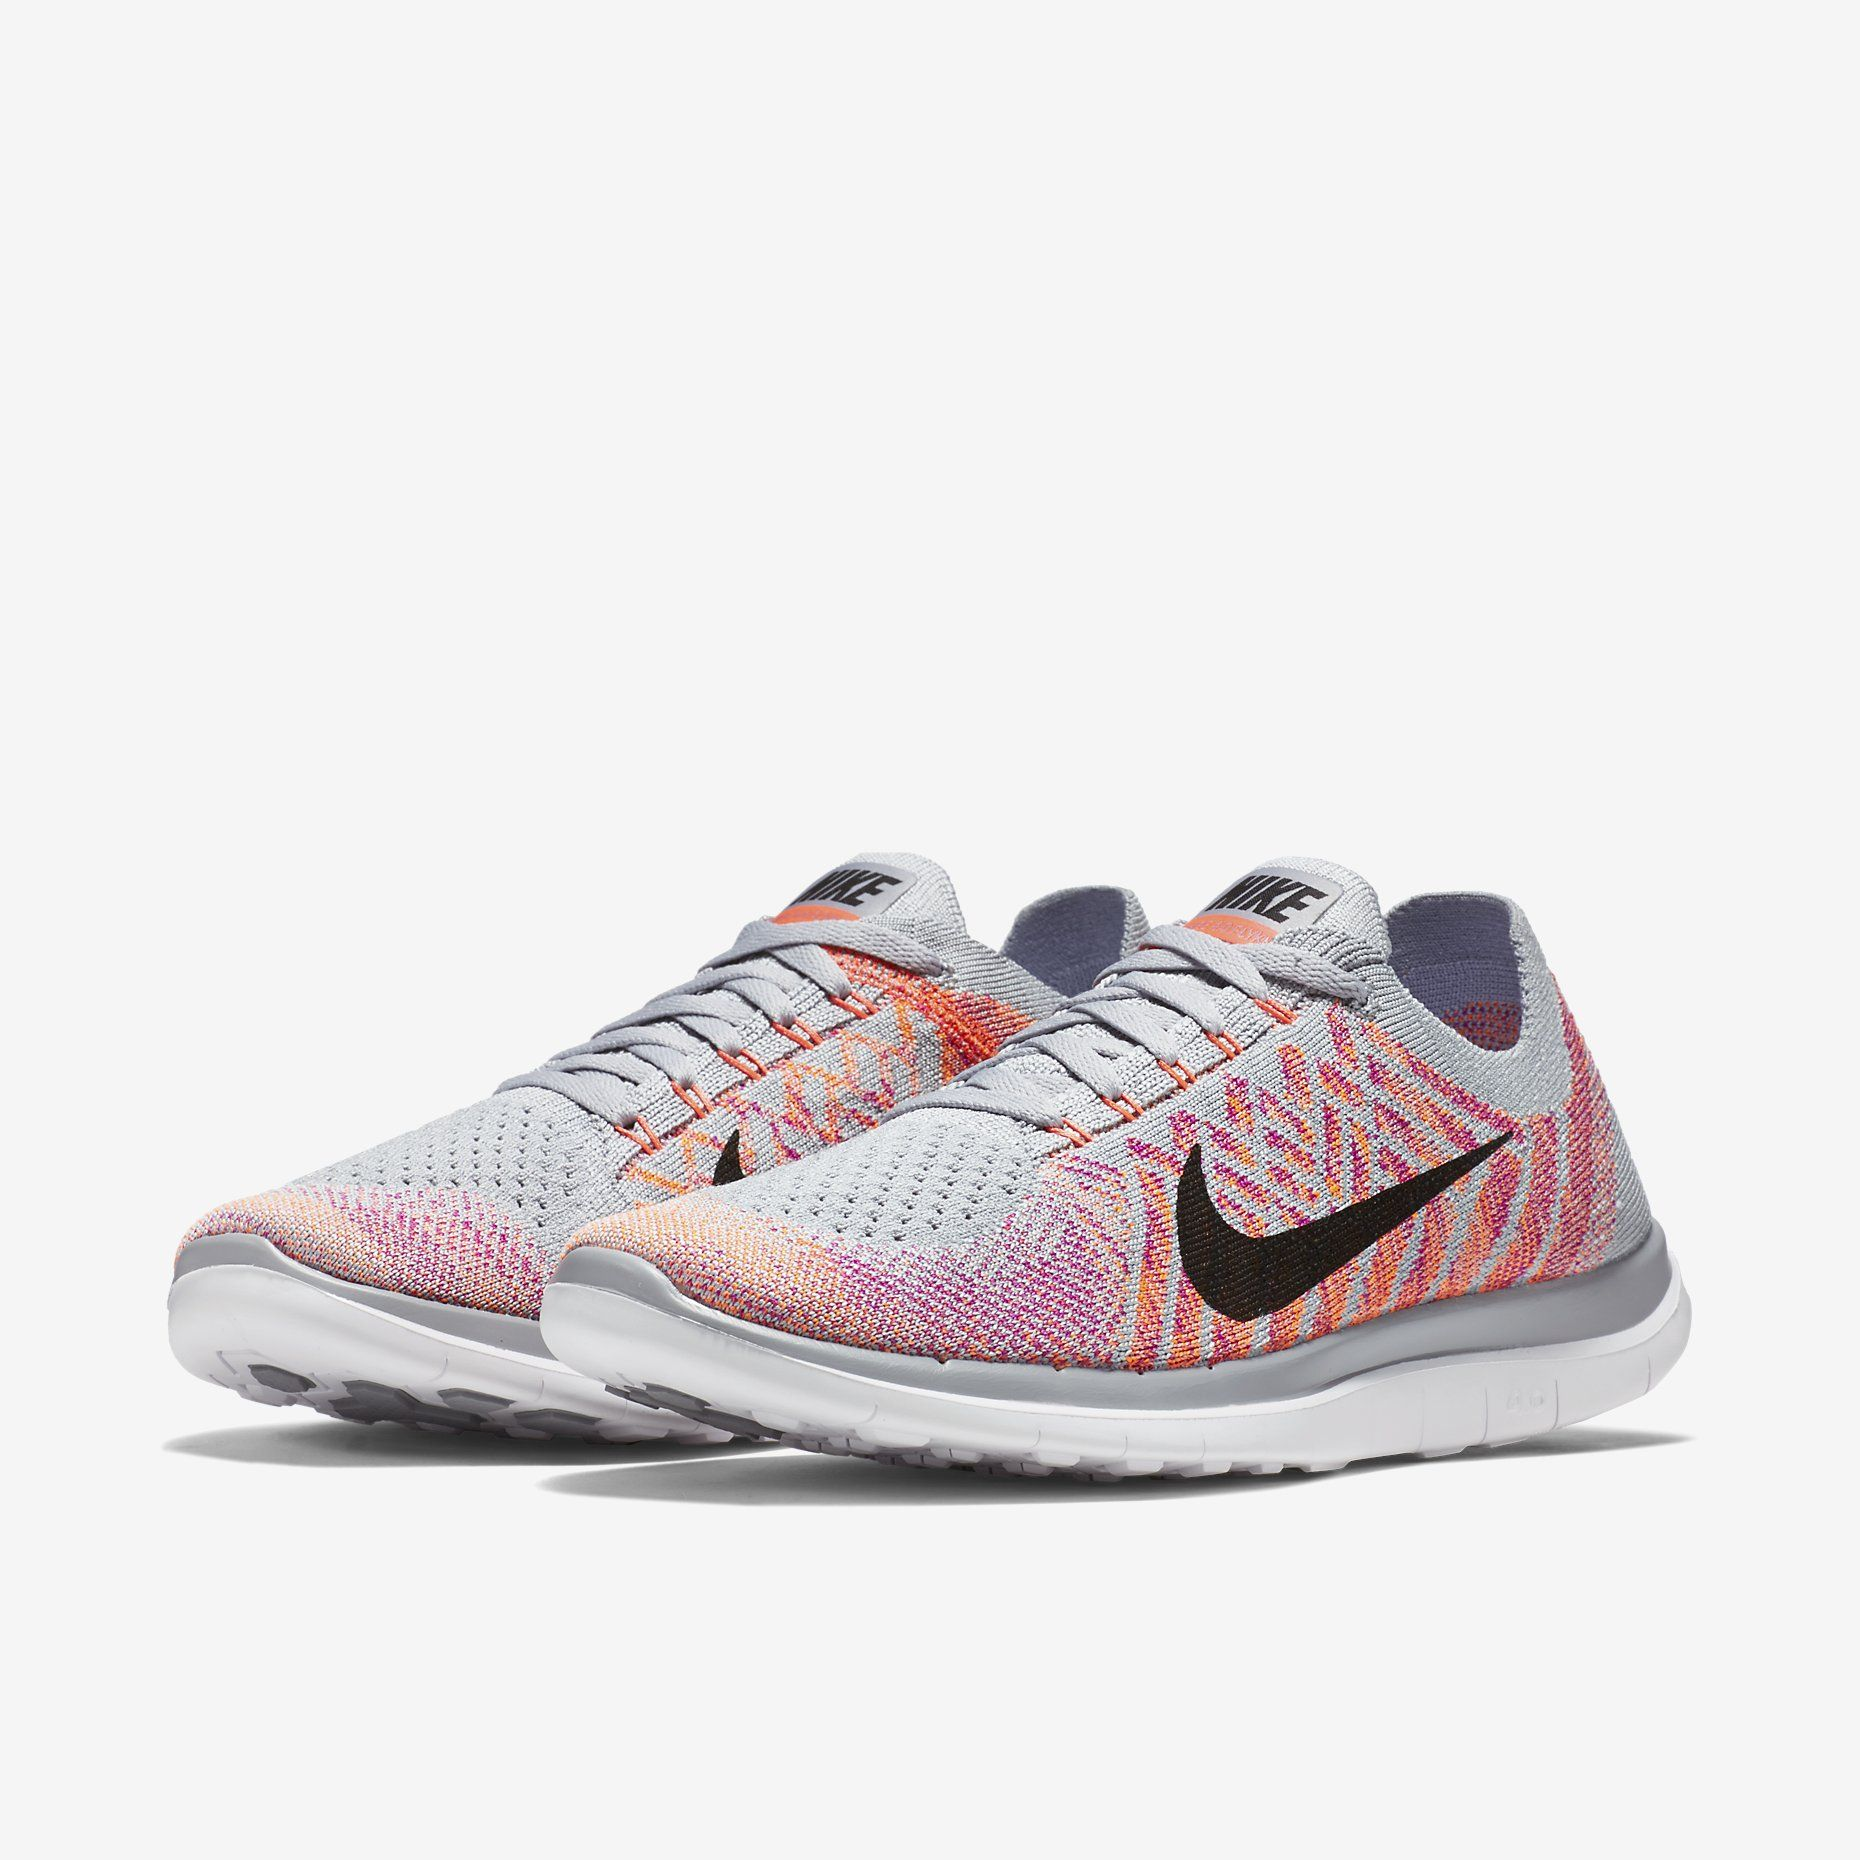 huge discount e1334 01b36 hot nike free 4.0 flyknit womens running shoe. 1cec2 7104f